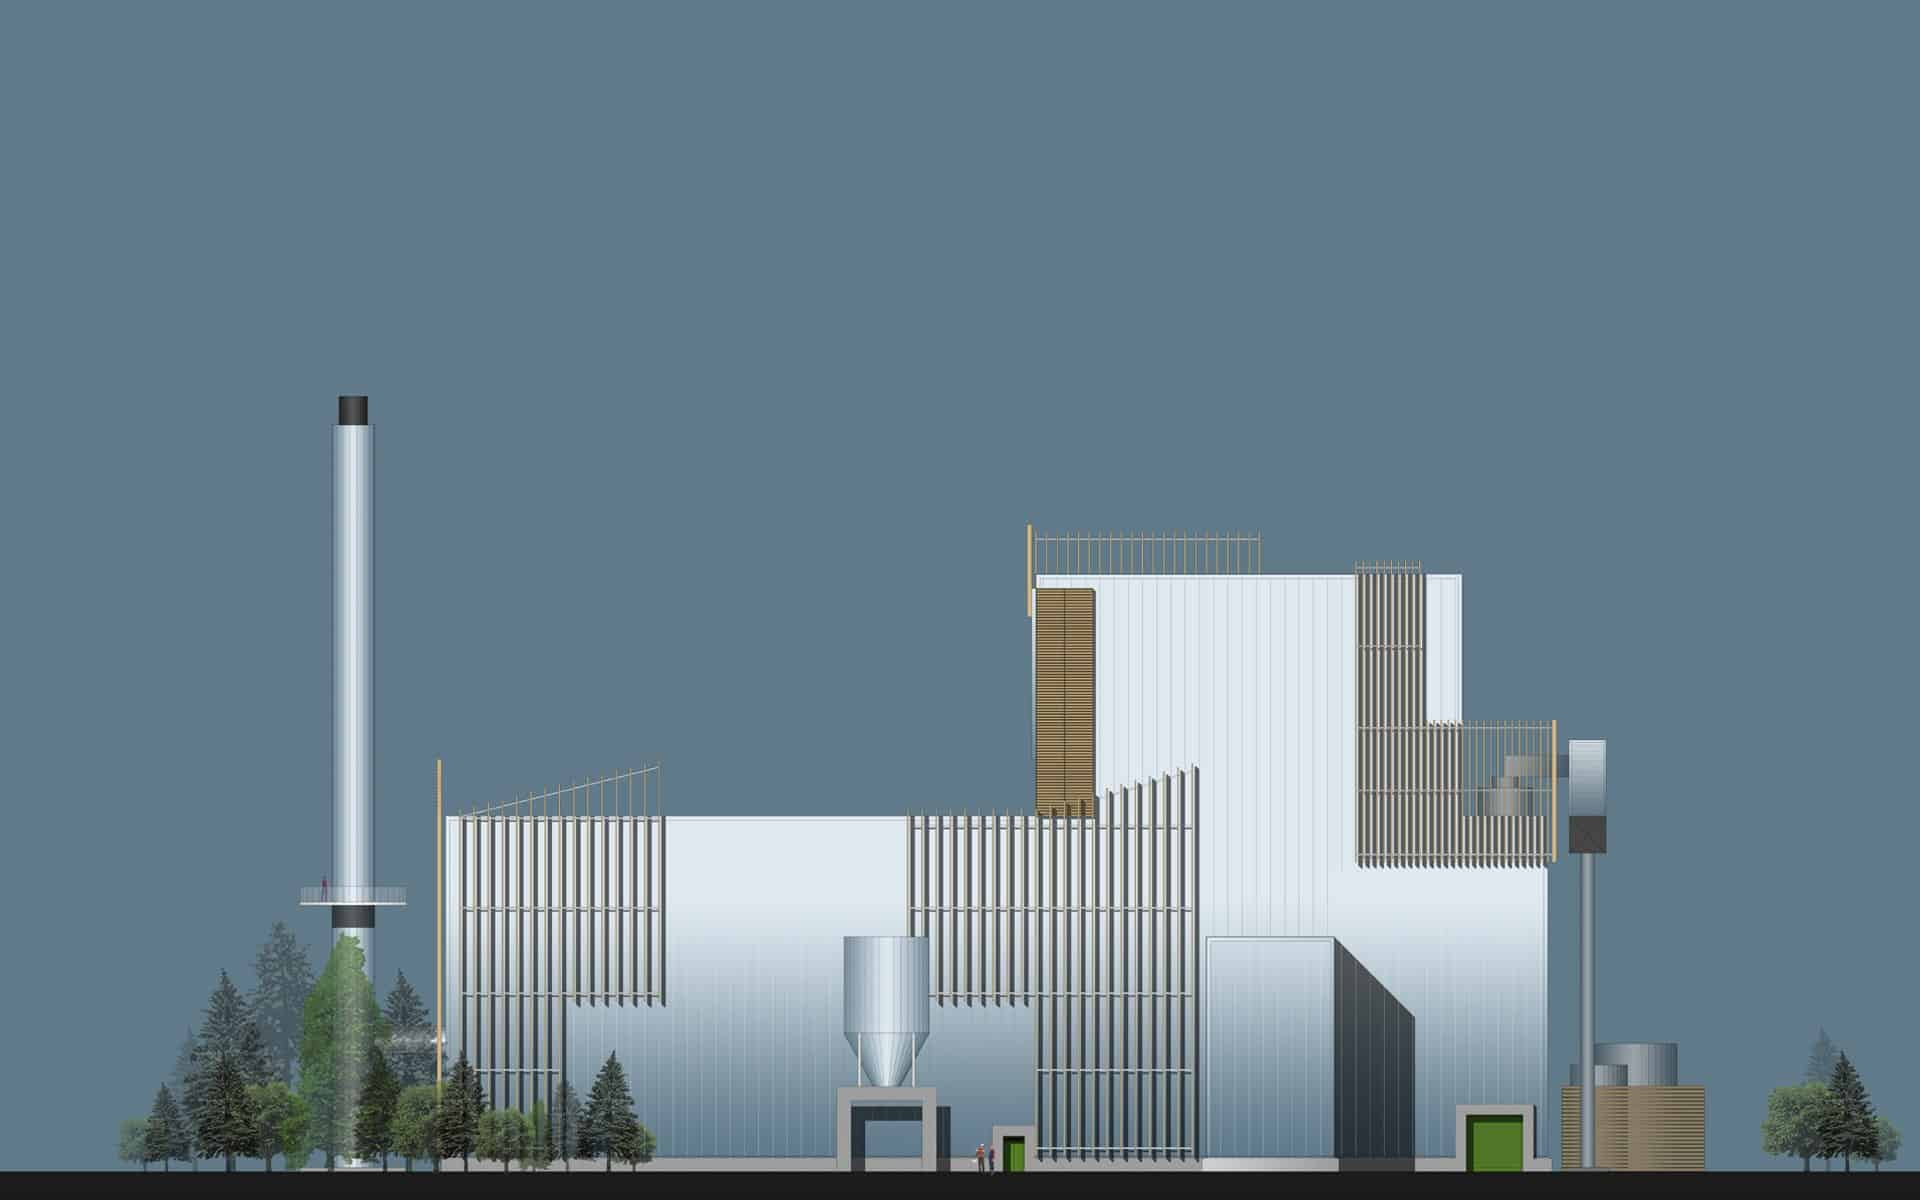 Biomass Energy Plant, HRI Architects, Architectural Services Inverness Highland